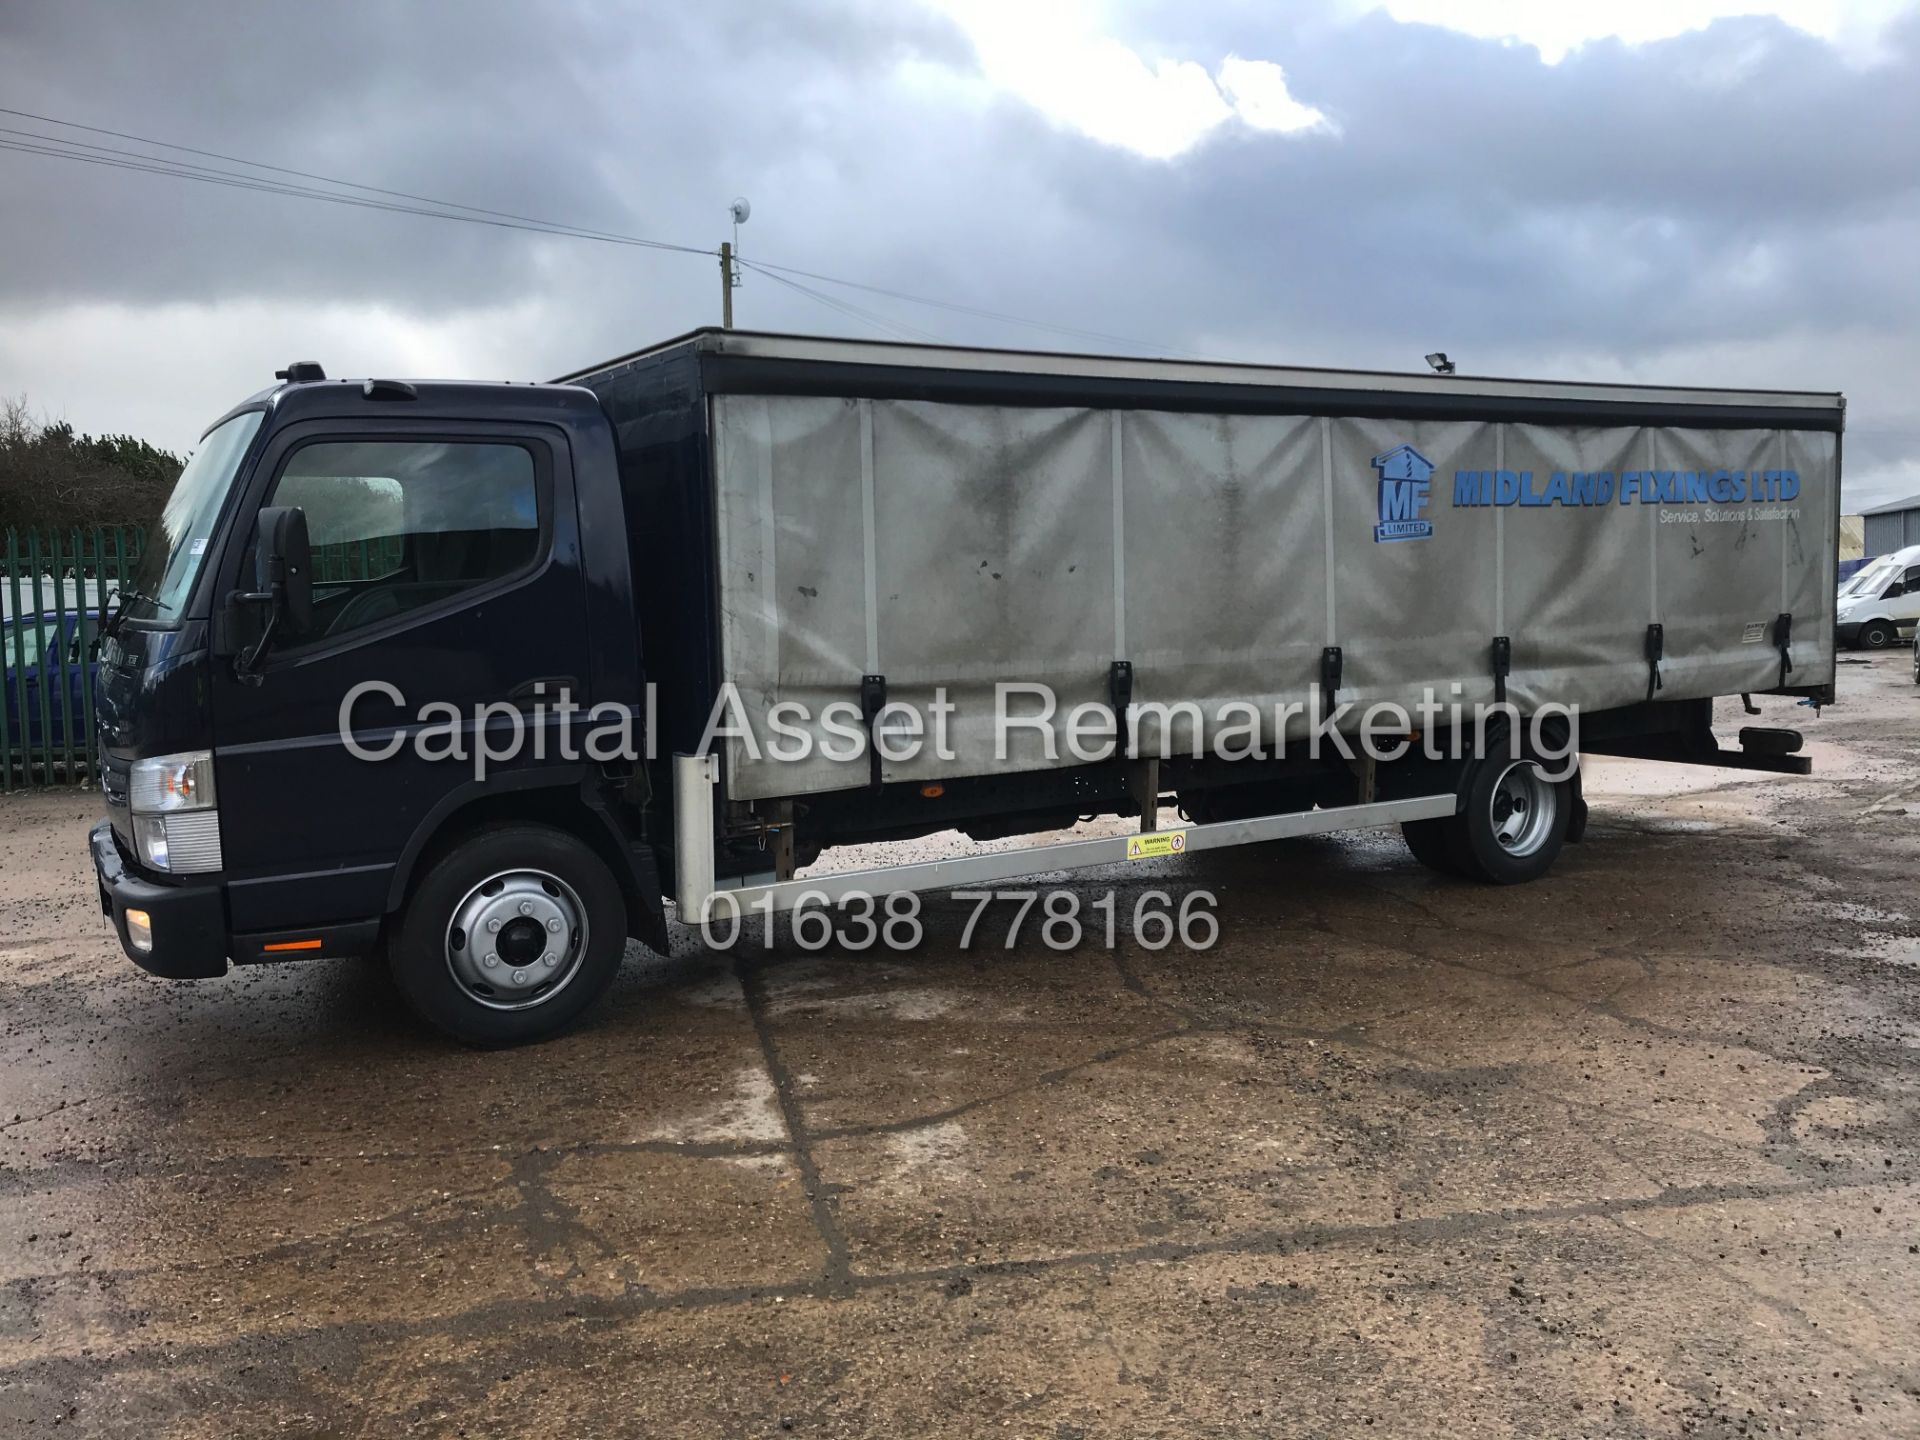 (ON SALE) MITSUBISHI FUSO CANTER 7C18 (16 REG) 1 OWNER *EURO 6* AD-BLUE - 4 WAY CAMERA SYSTEM